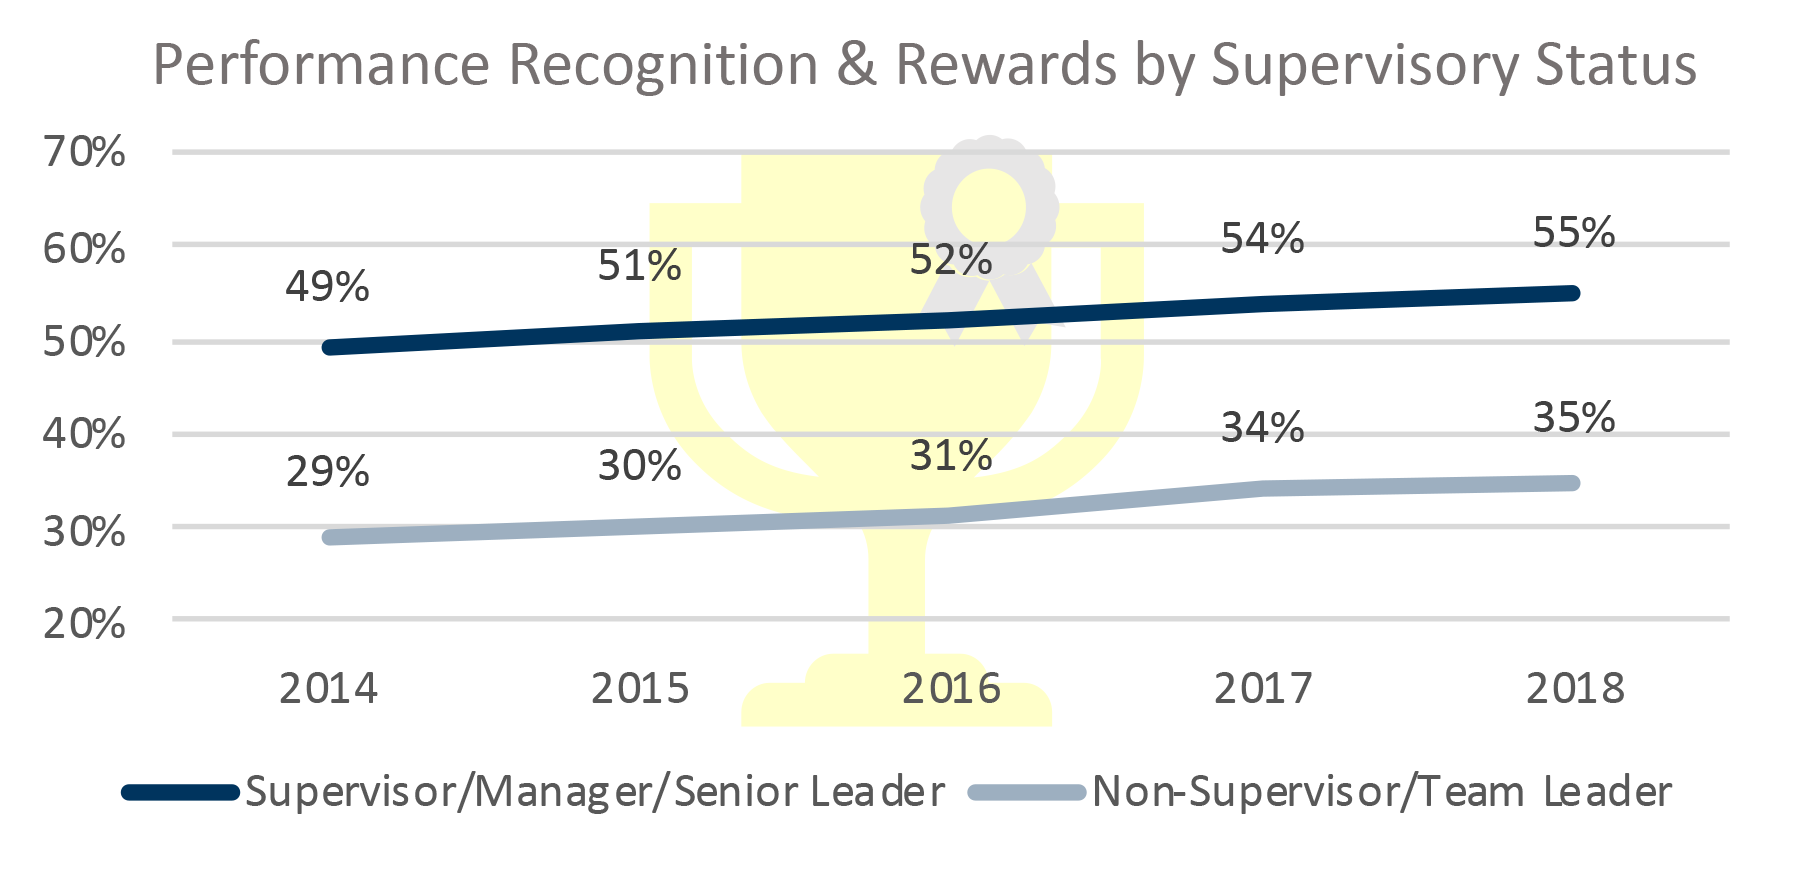 Performance Recognition & Rewards by Supervisory Status